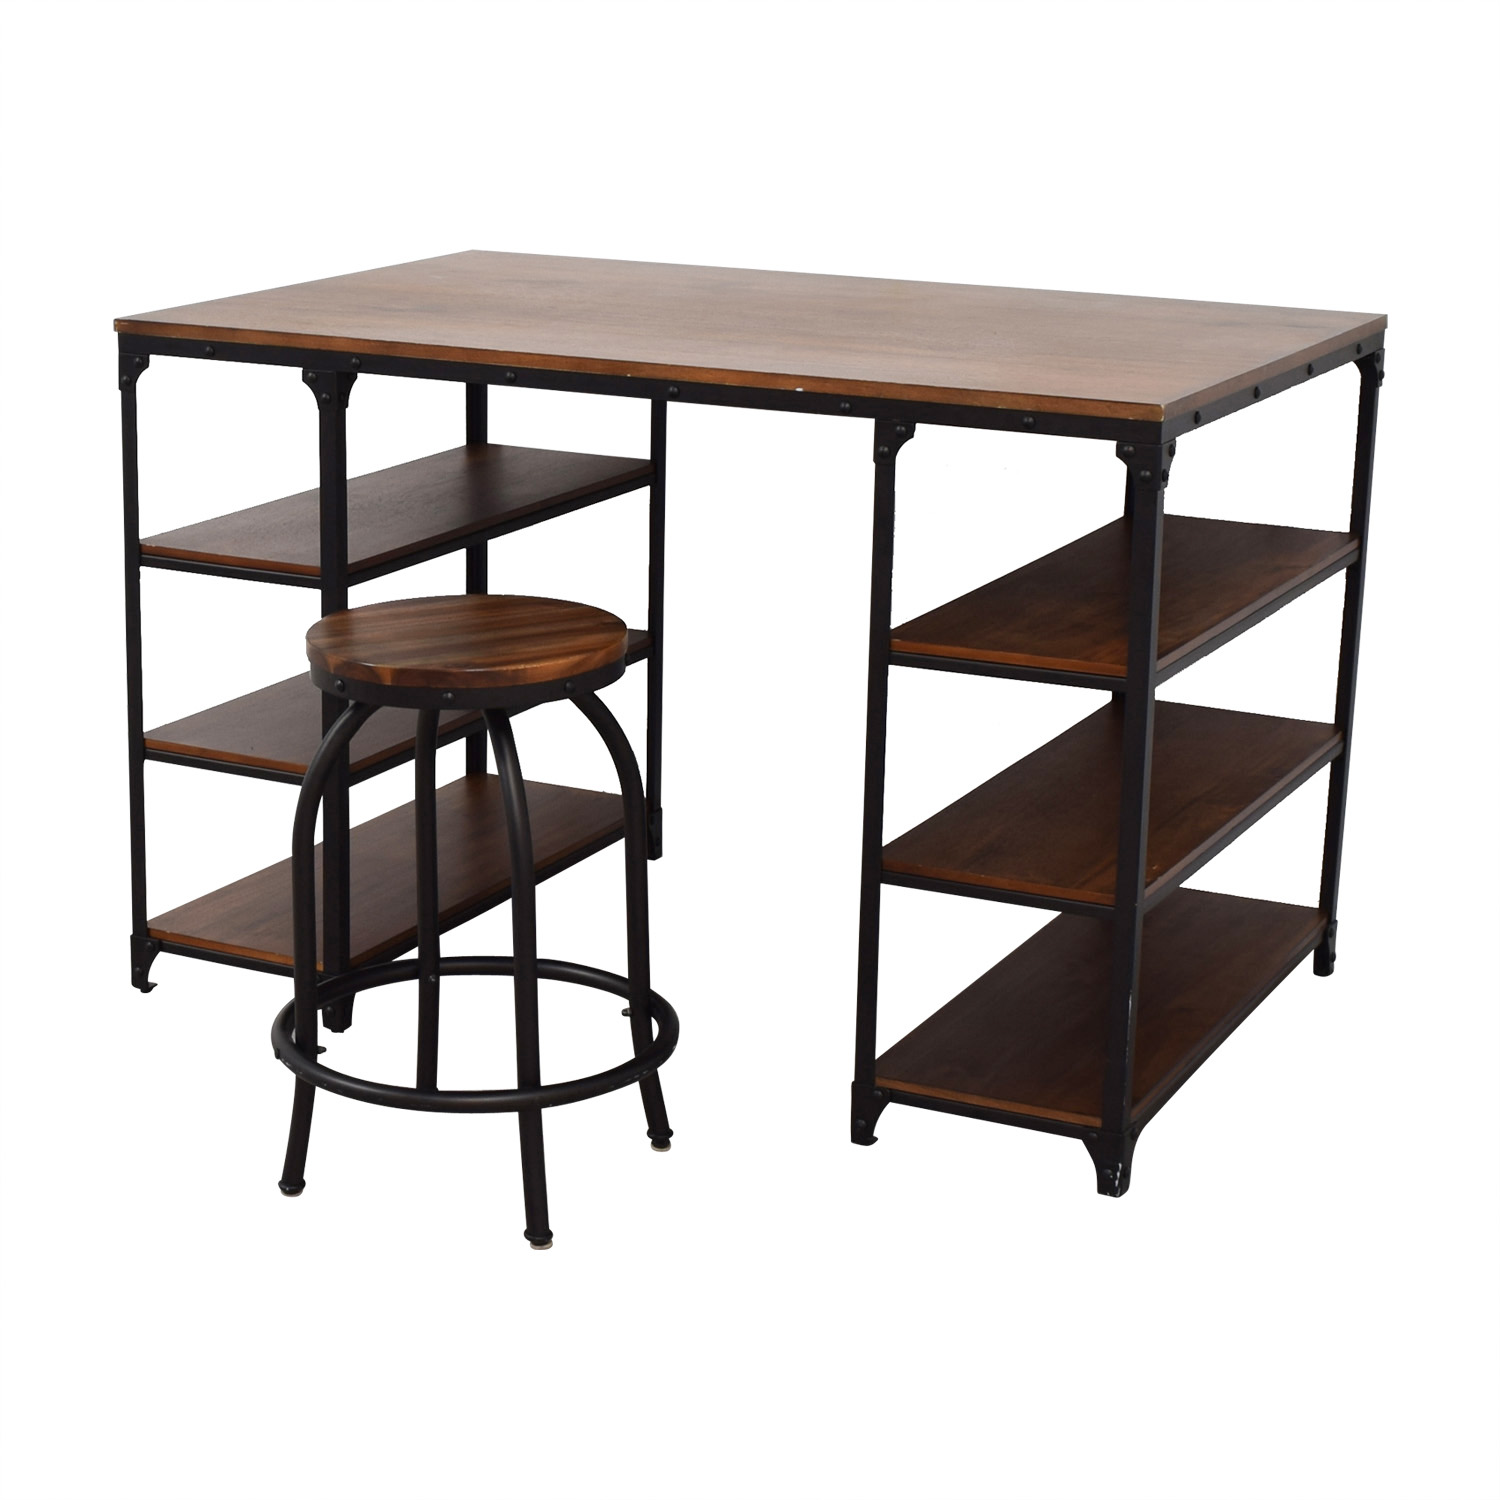 shop Raymour & Flanigan Lorimer Counter Height Writing Desk with Stool Raymour & Flanigan